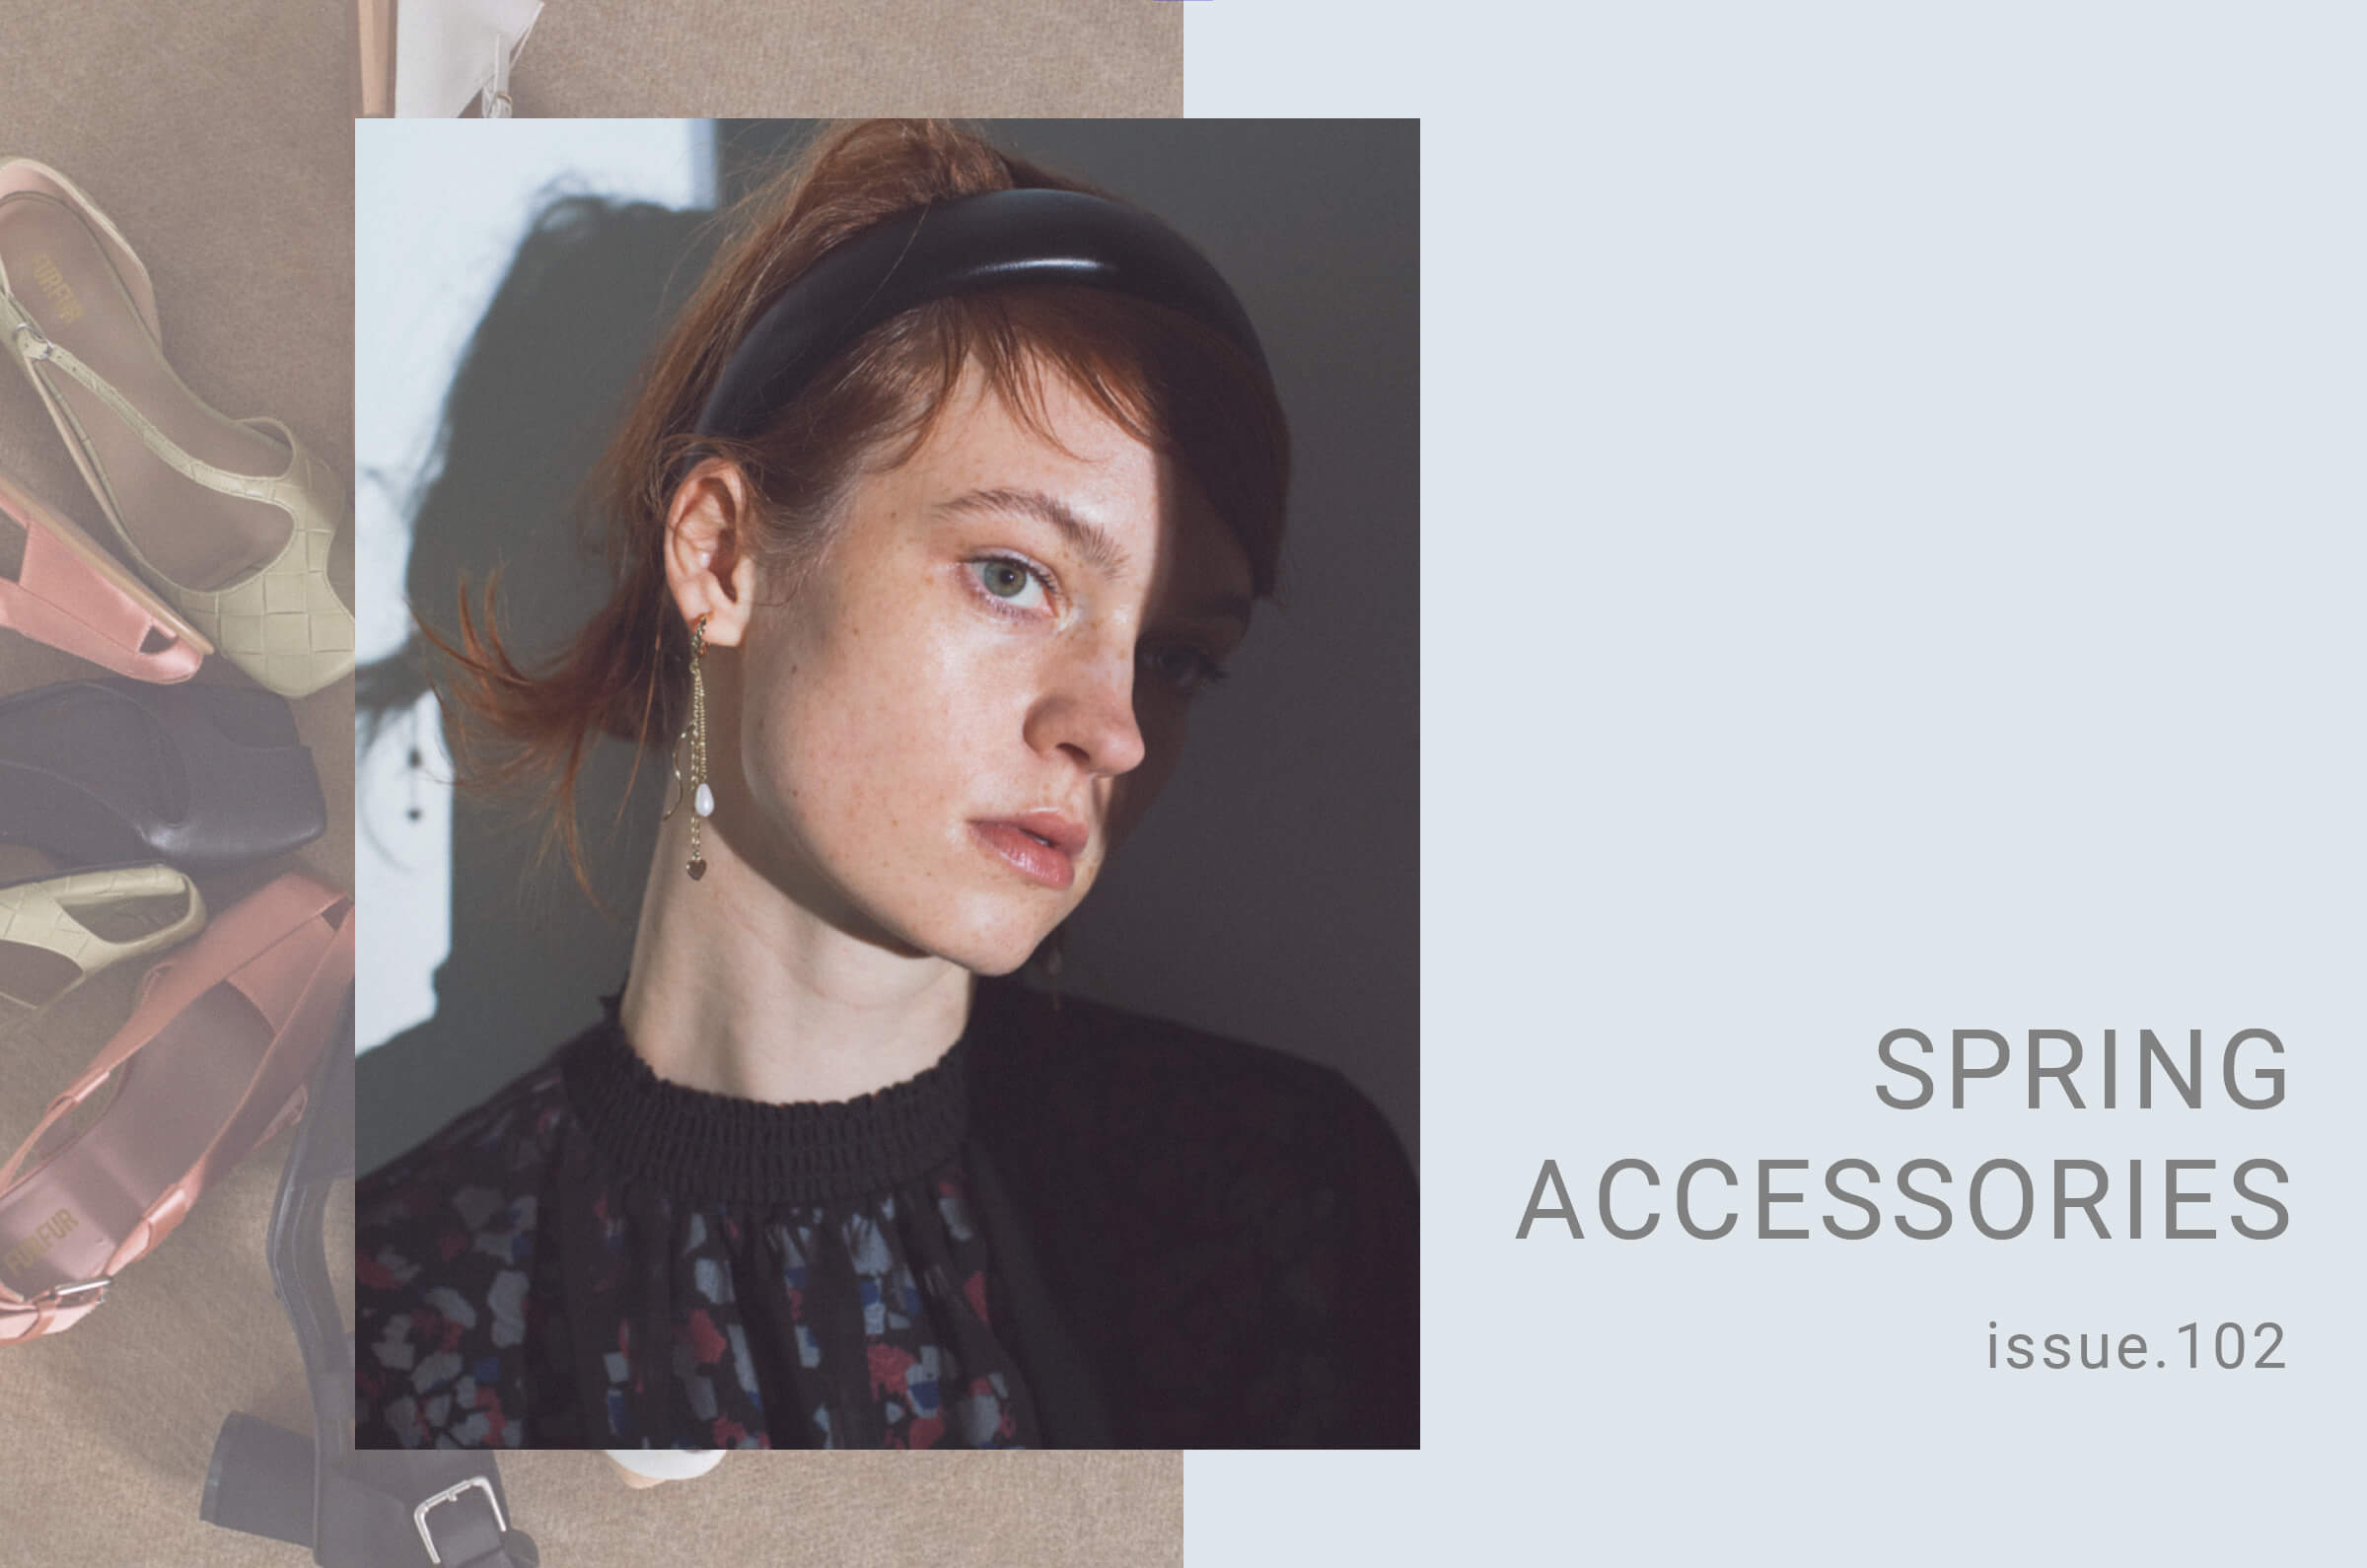 issue.102 SPRING ACCESSORIES